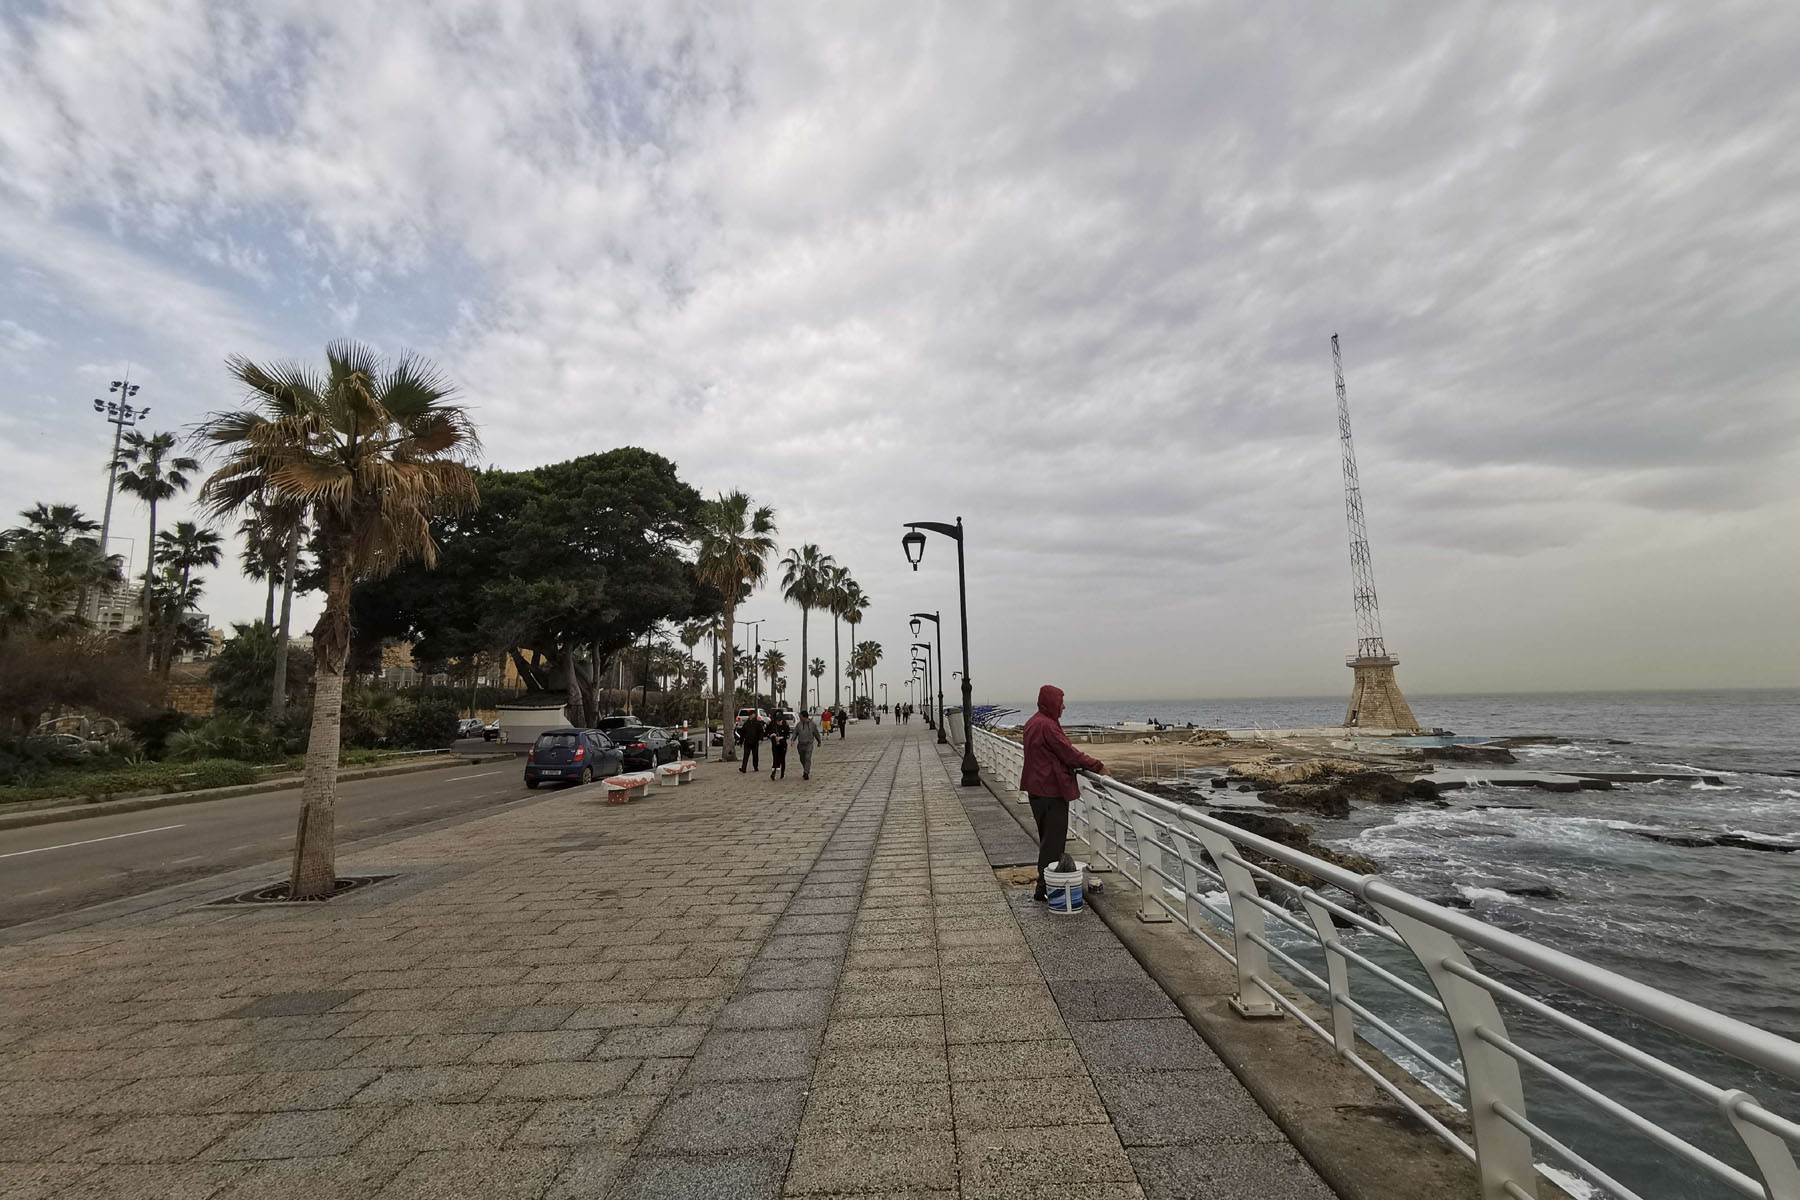 Beirut's seaside corniche, or waterfront promenade, along the Mediterranean Sea, seen almost empty of residents and tourists in Beirut, March 12. (AP)